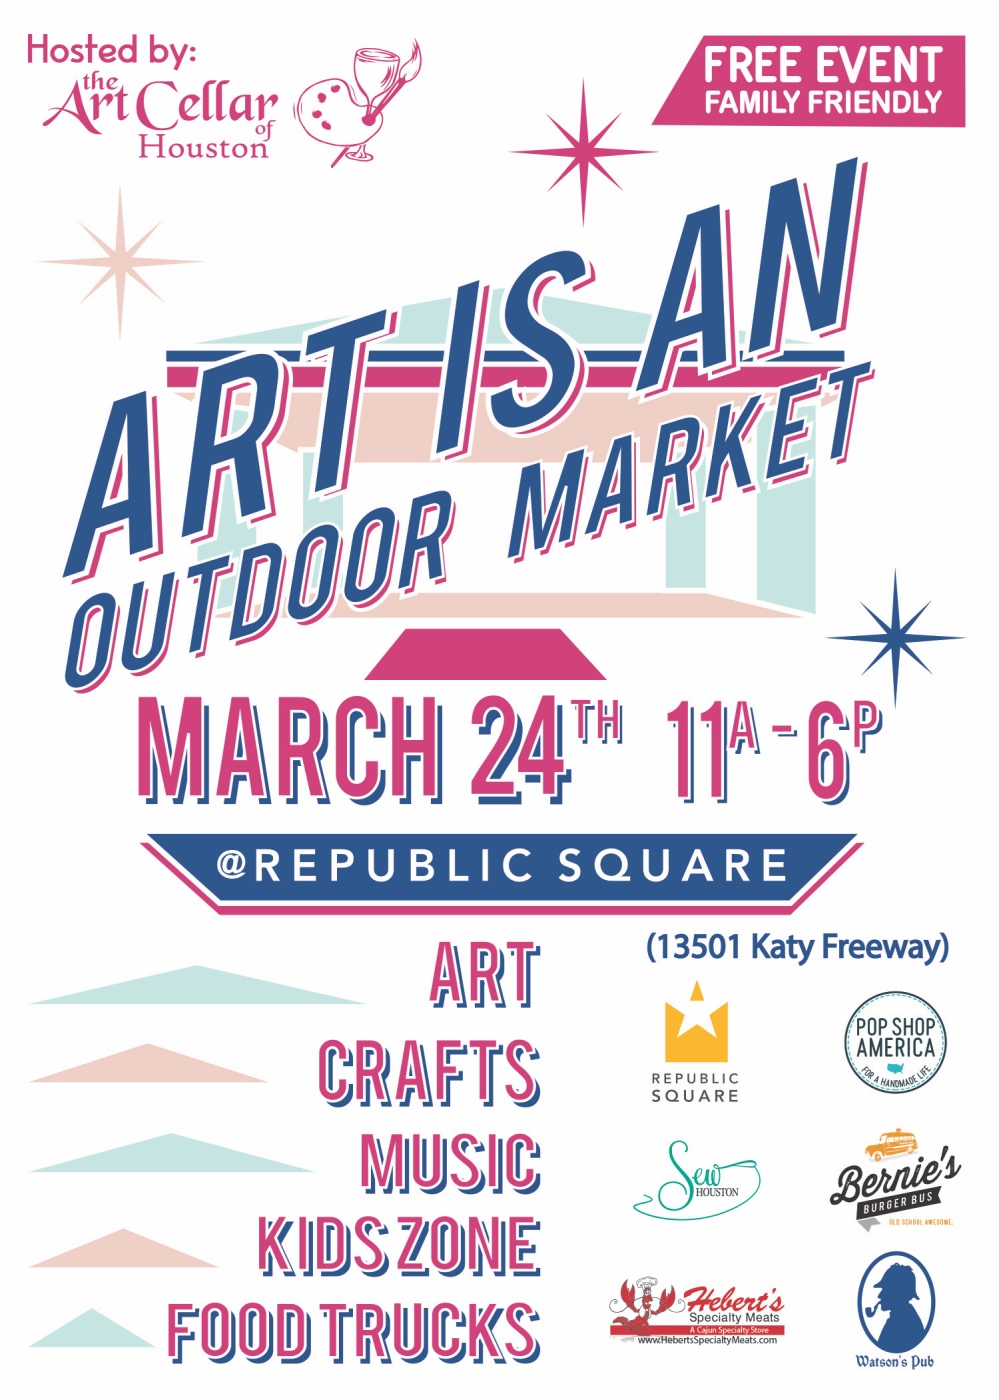 Art-is-an-Outdoor-market-spring-art-festival-houston